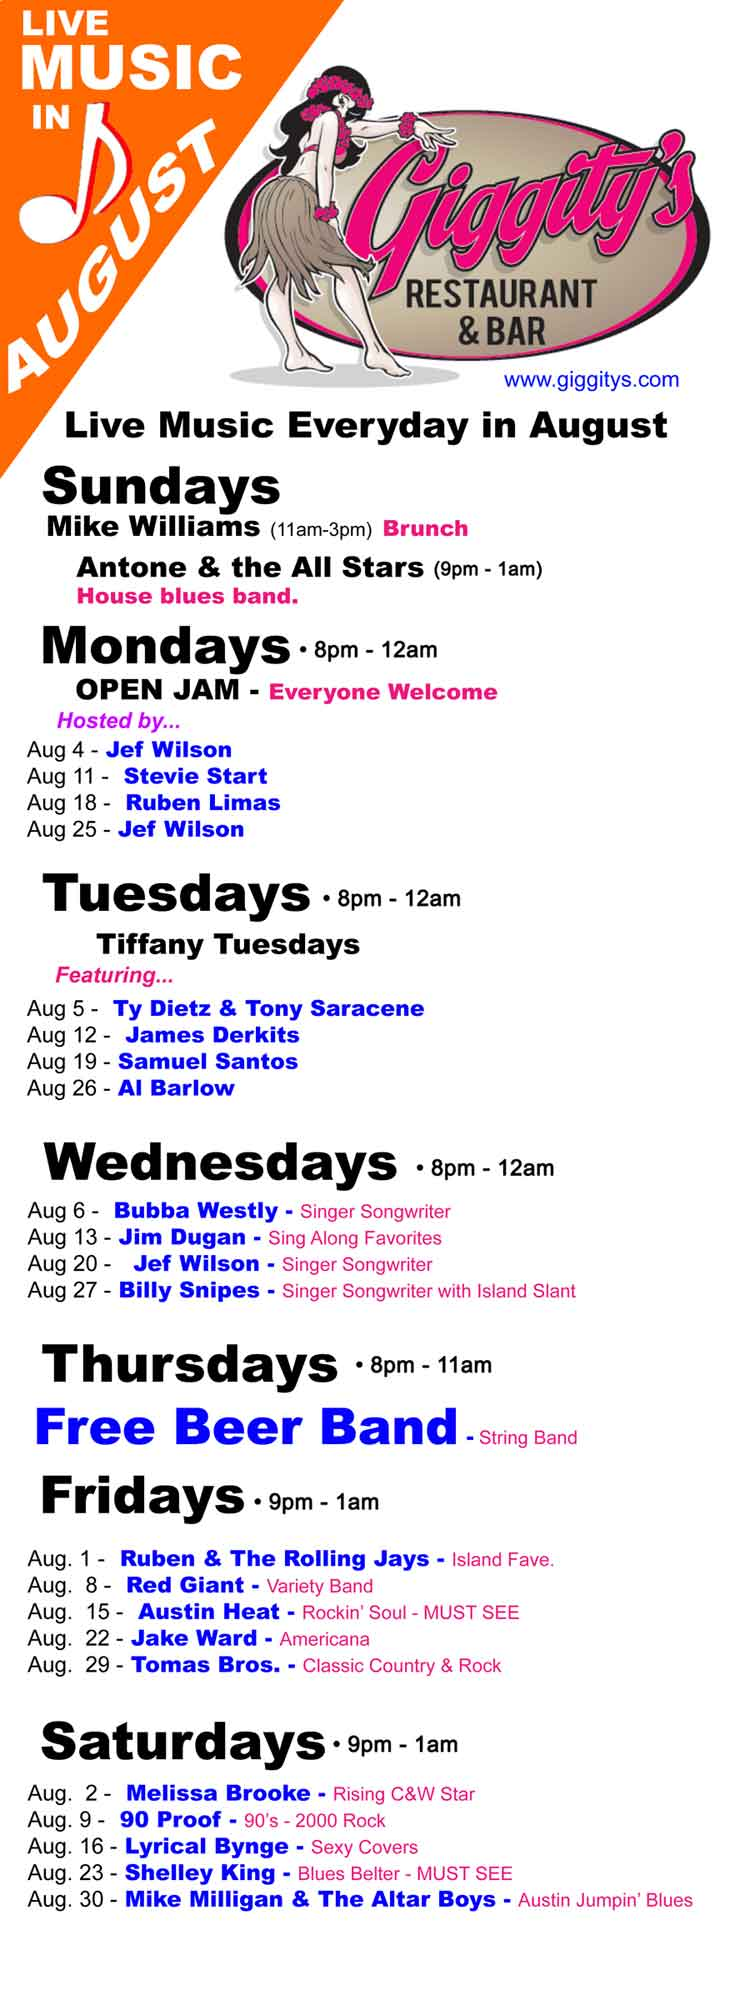 Giggitys Live Music Schedule - Music Live Every Day in Port Aransas, Texas.